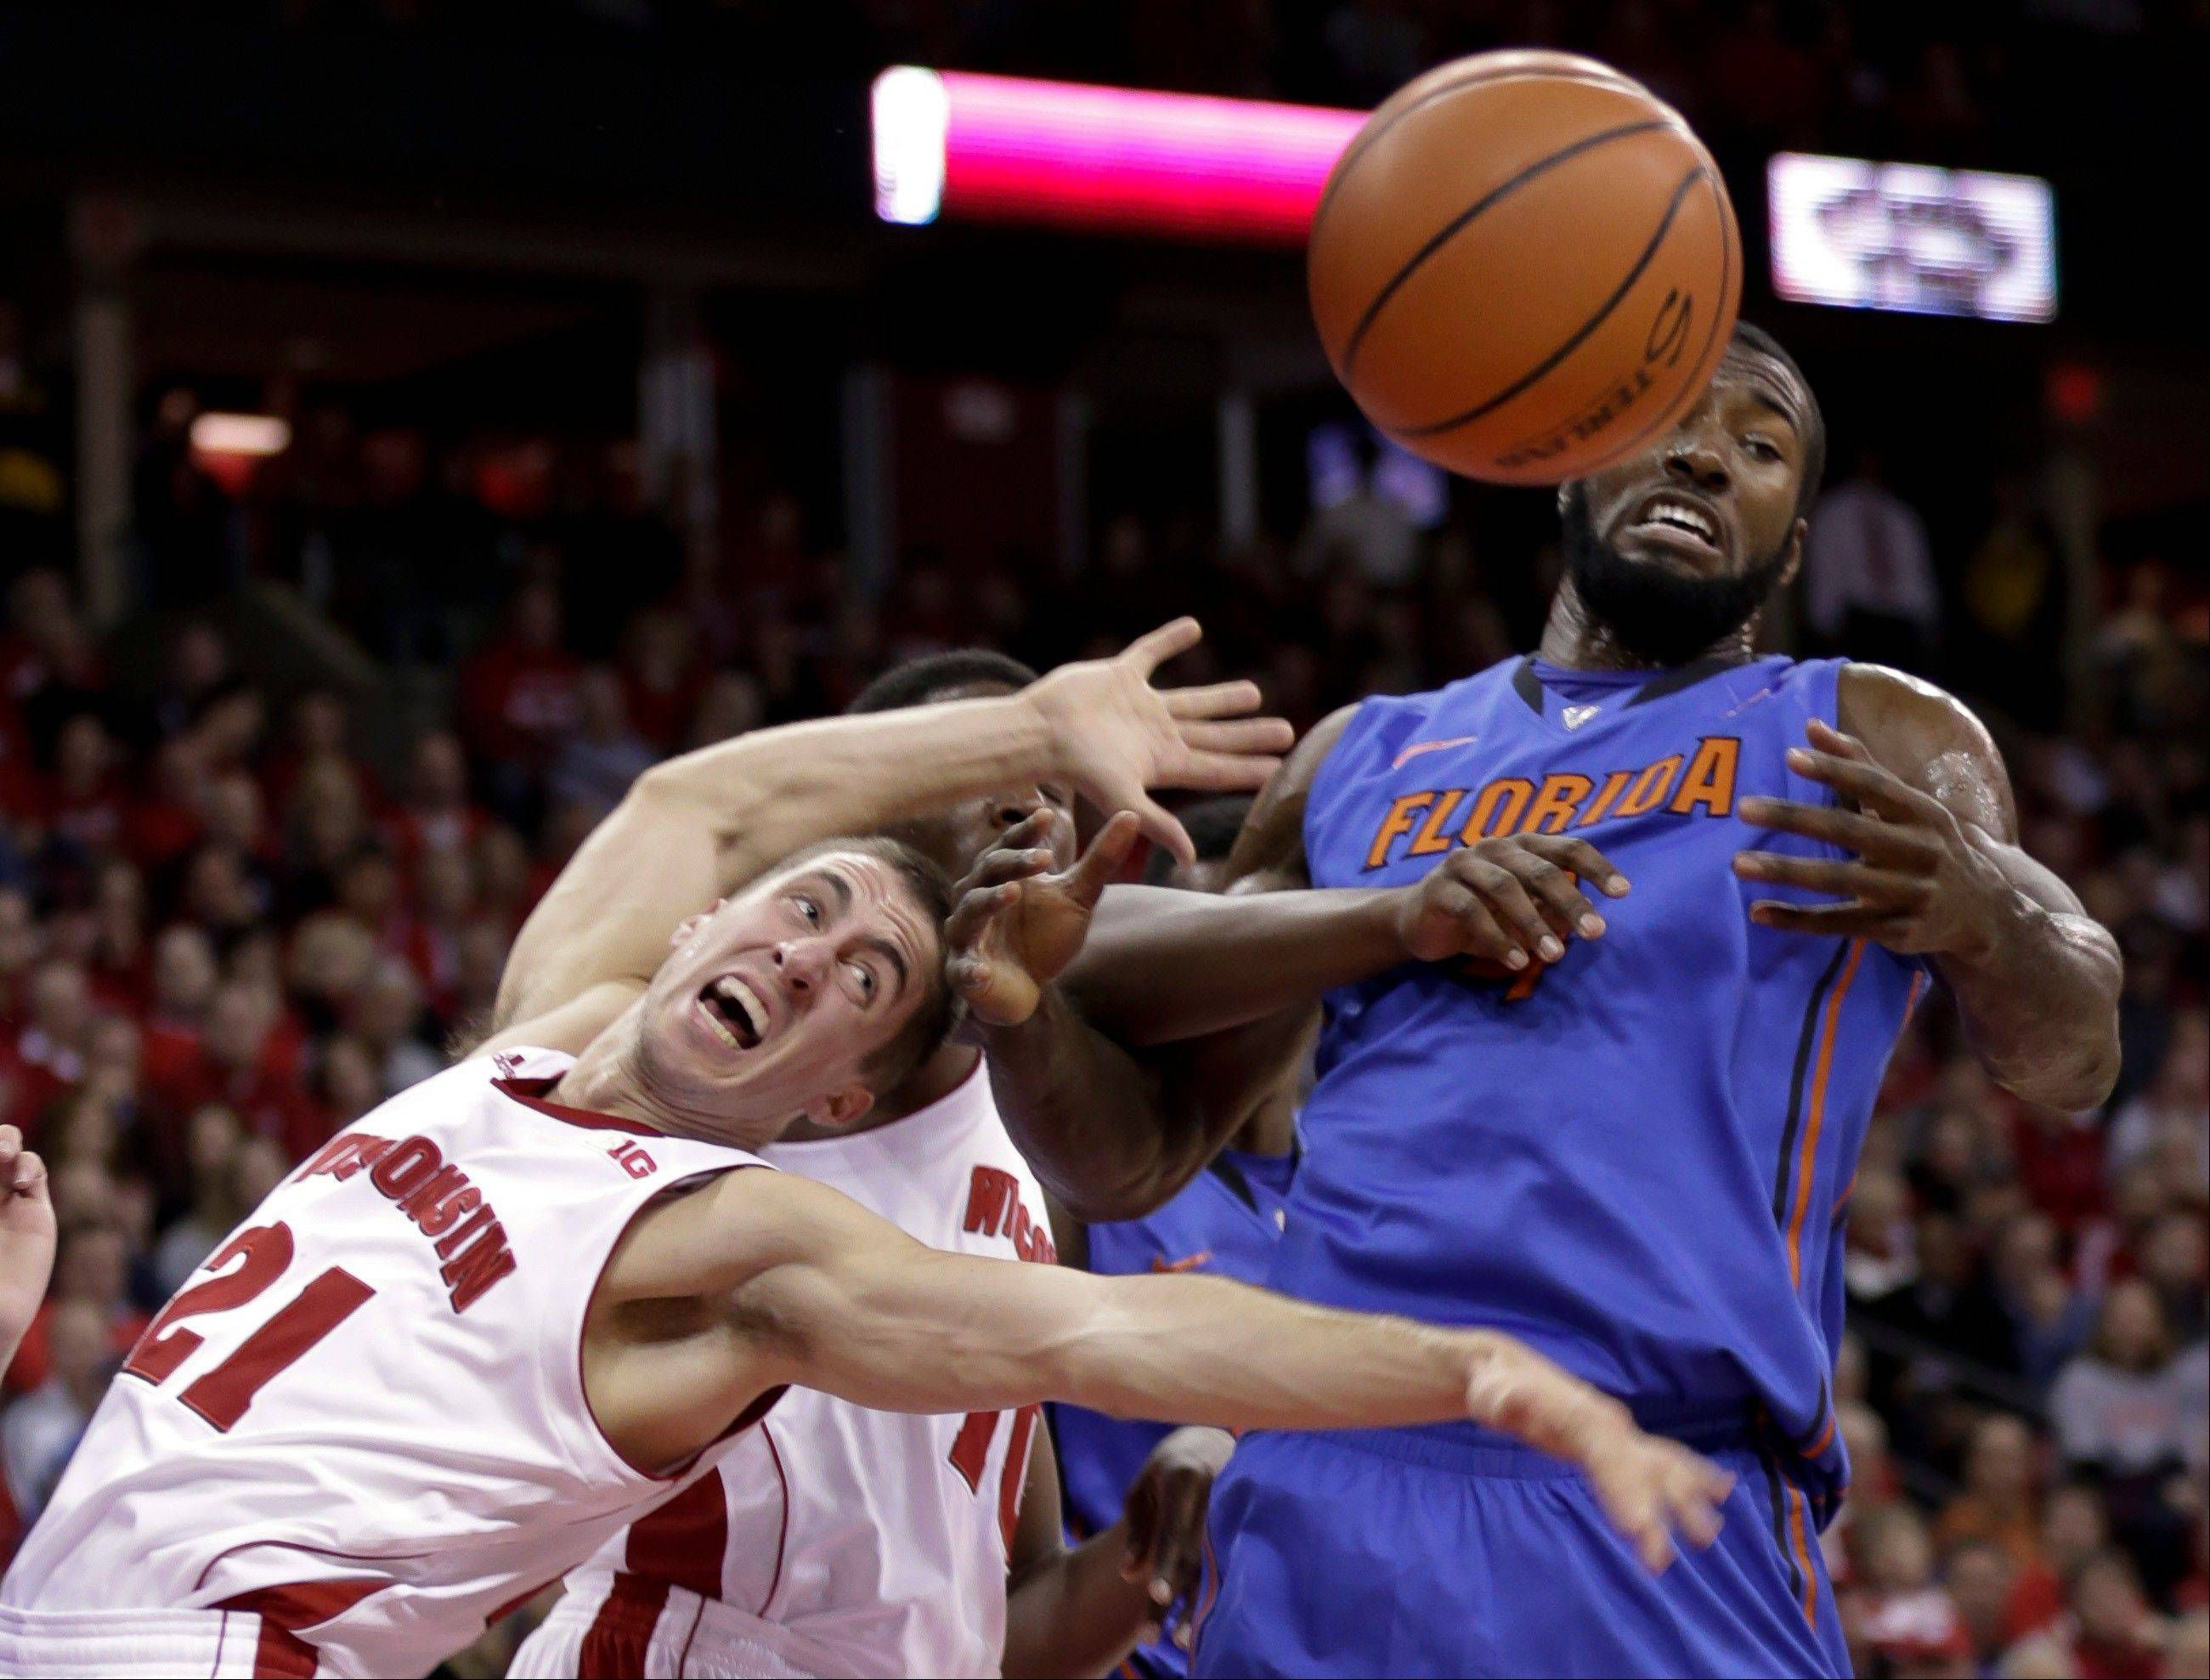 No. 20 Wisconsin defeats No. 11 Florida